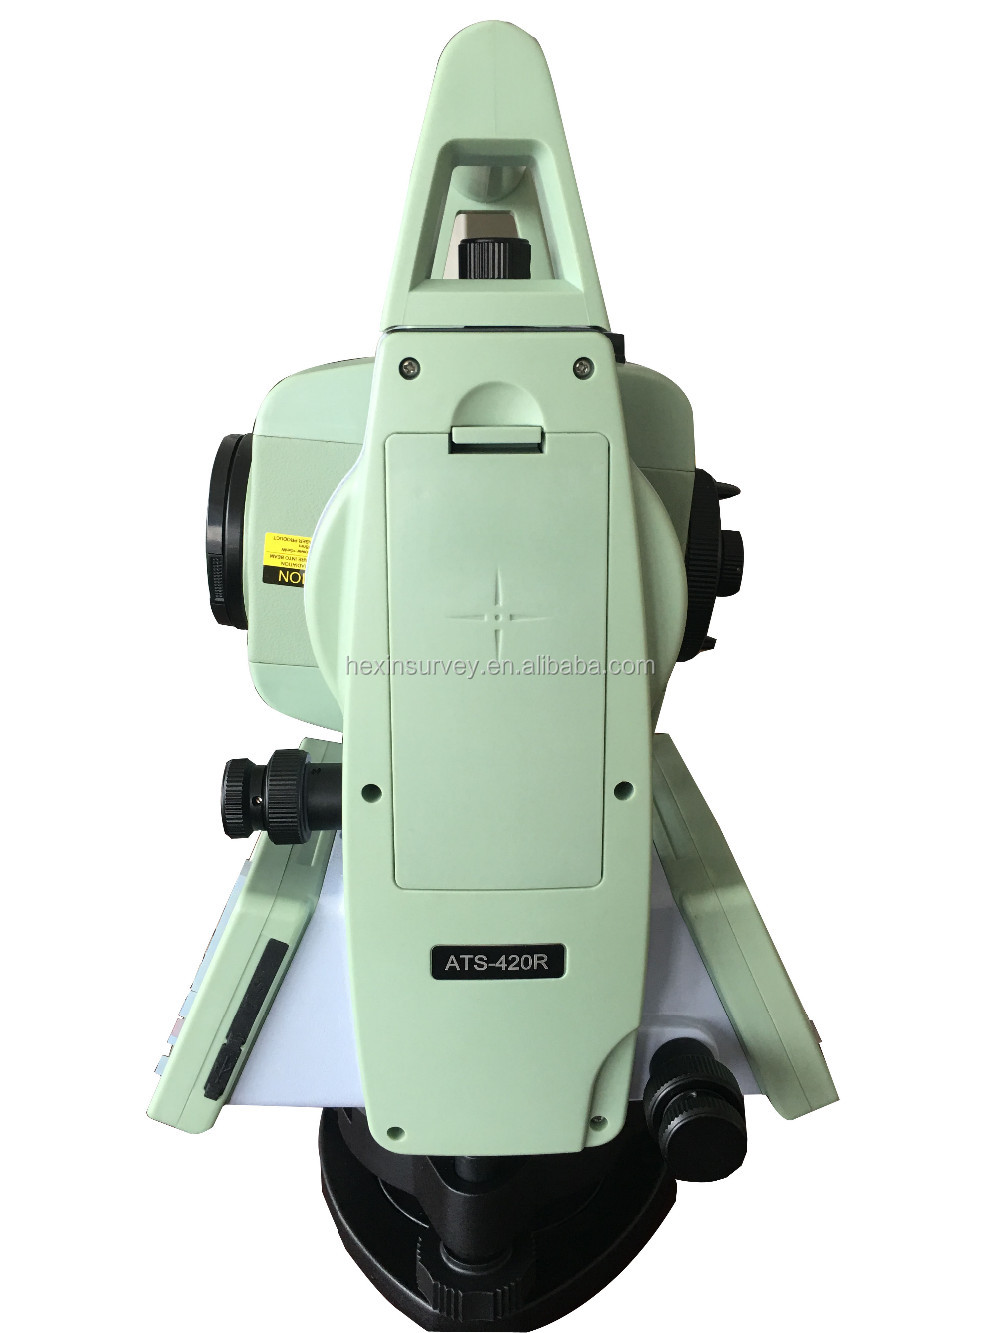 Brand Sunway ATS420R total station surveying instrument equipment